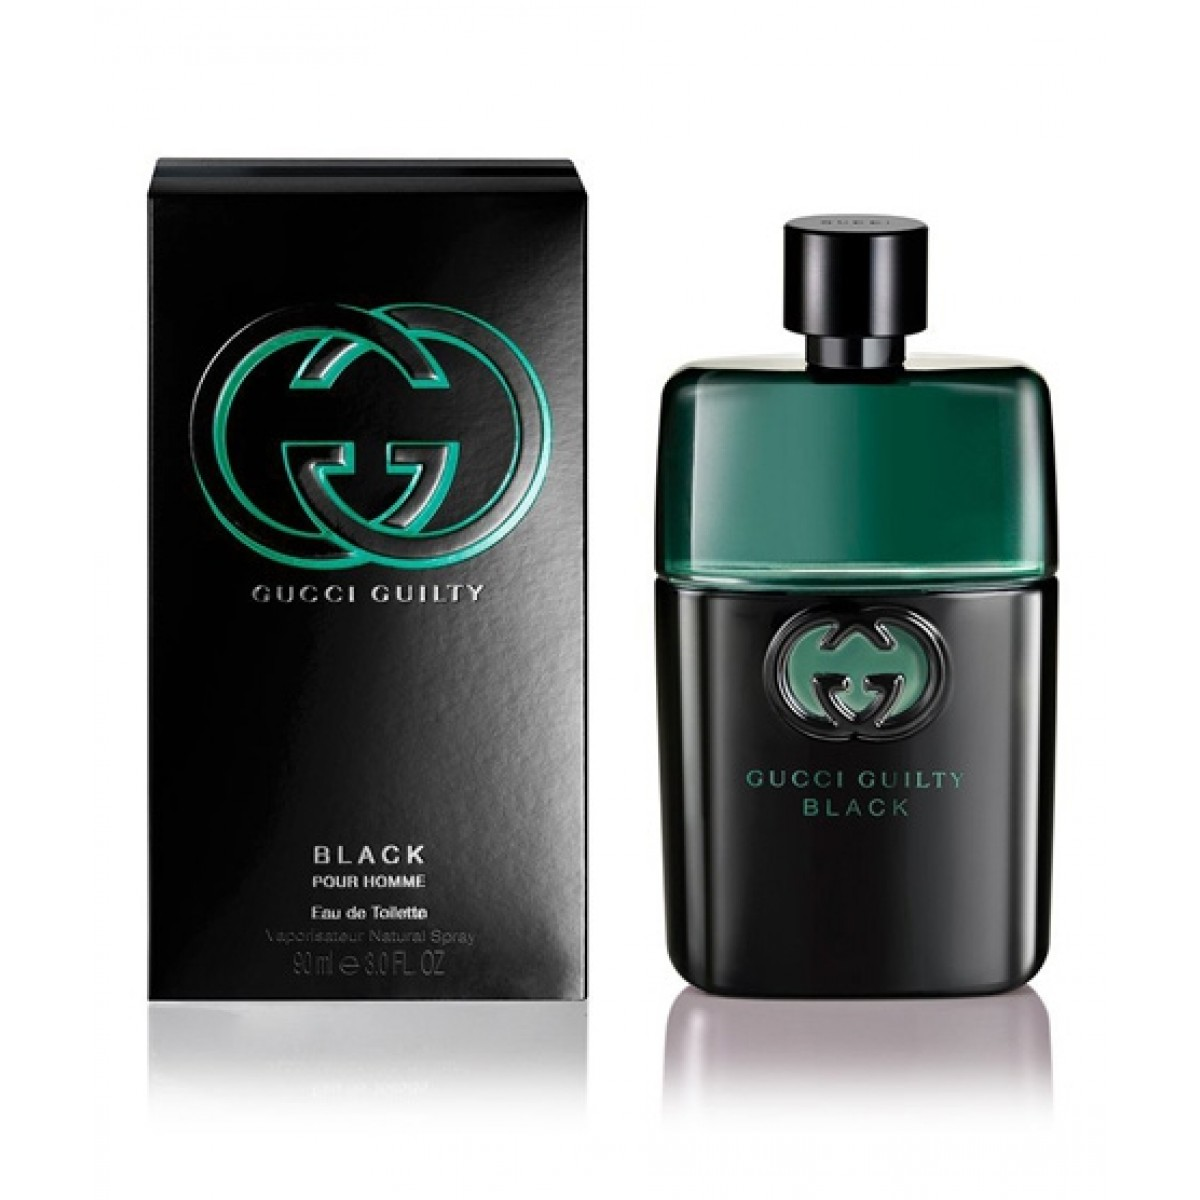 Gucci Guilty Black Pour Homme Eau De Toilette For Men 90ml